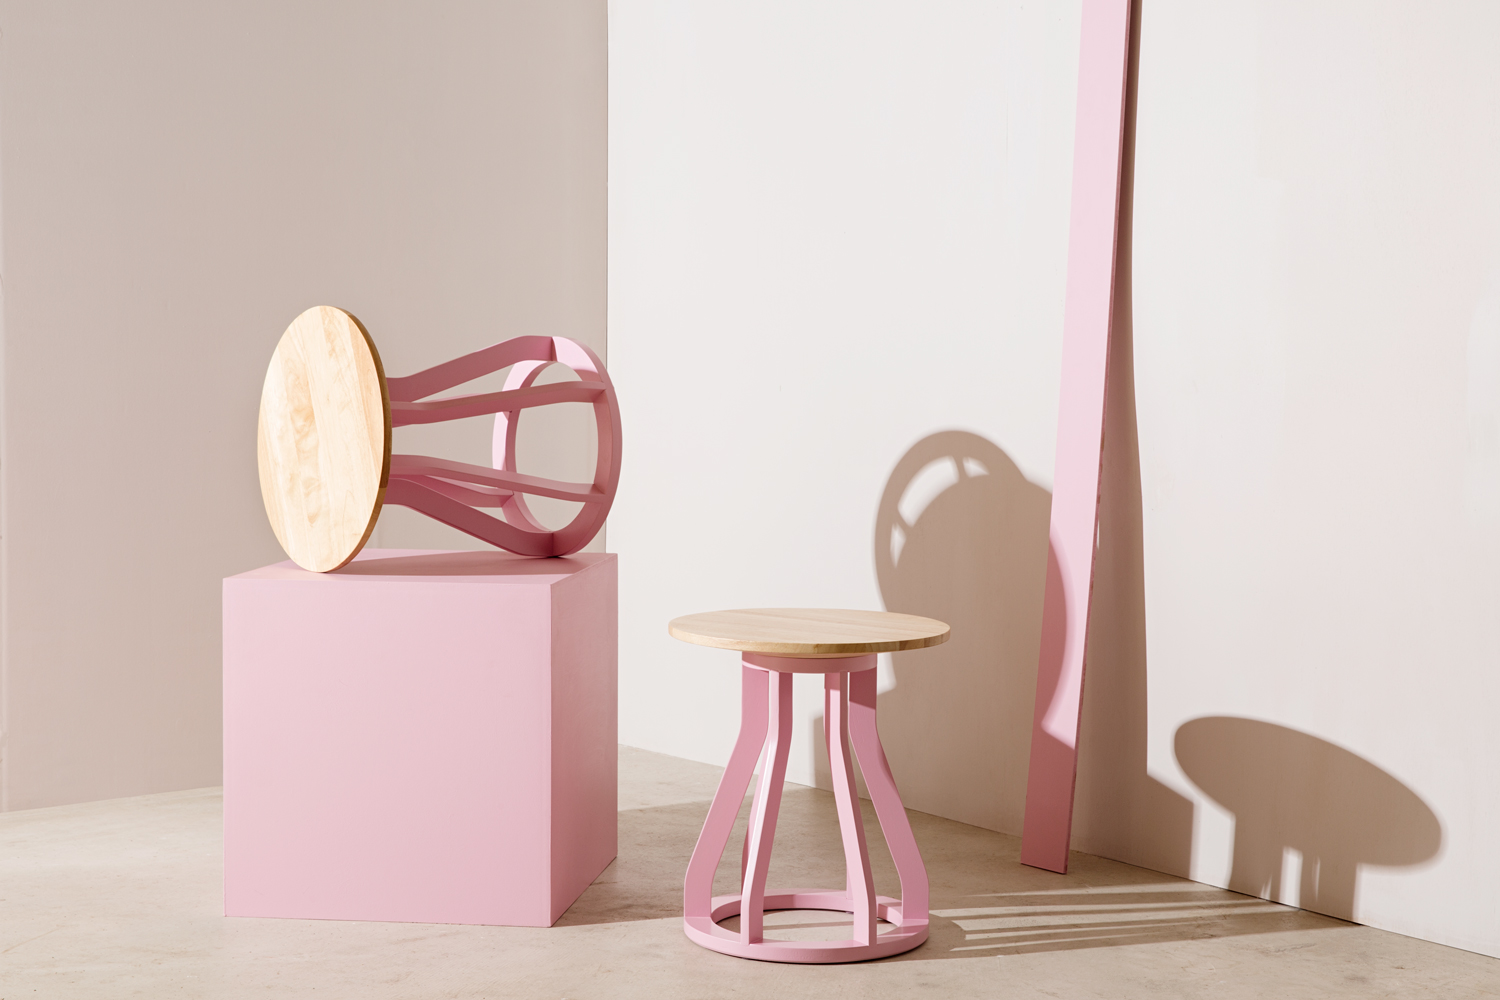 Lighting And Household Accessories That Support The Local Australian Design Industry.